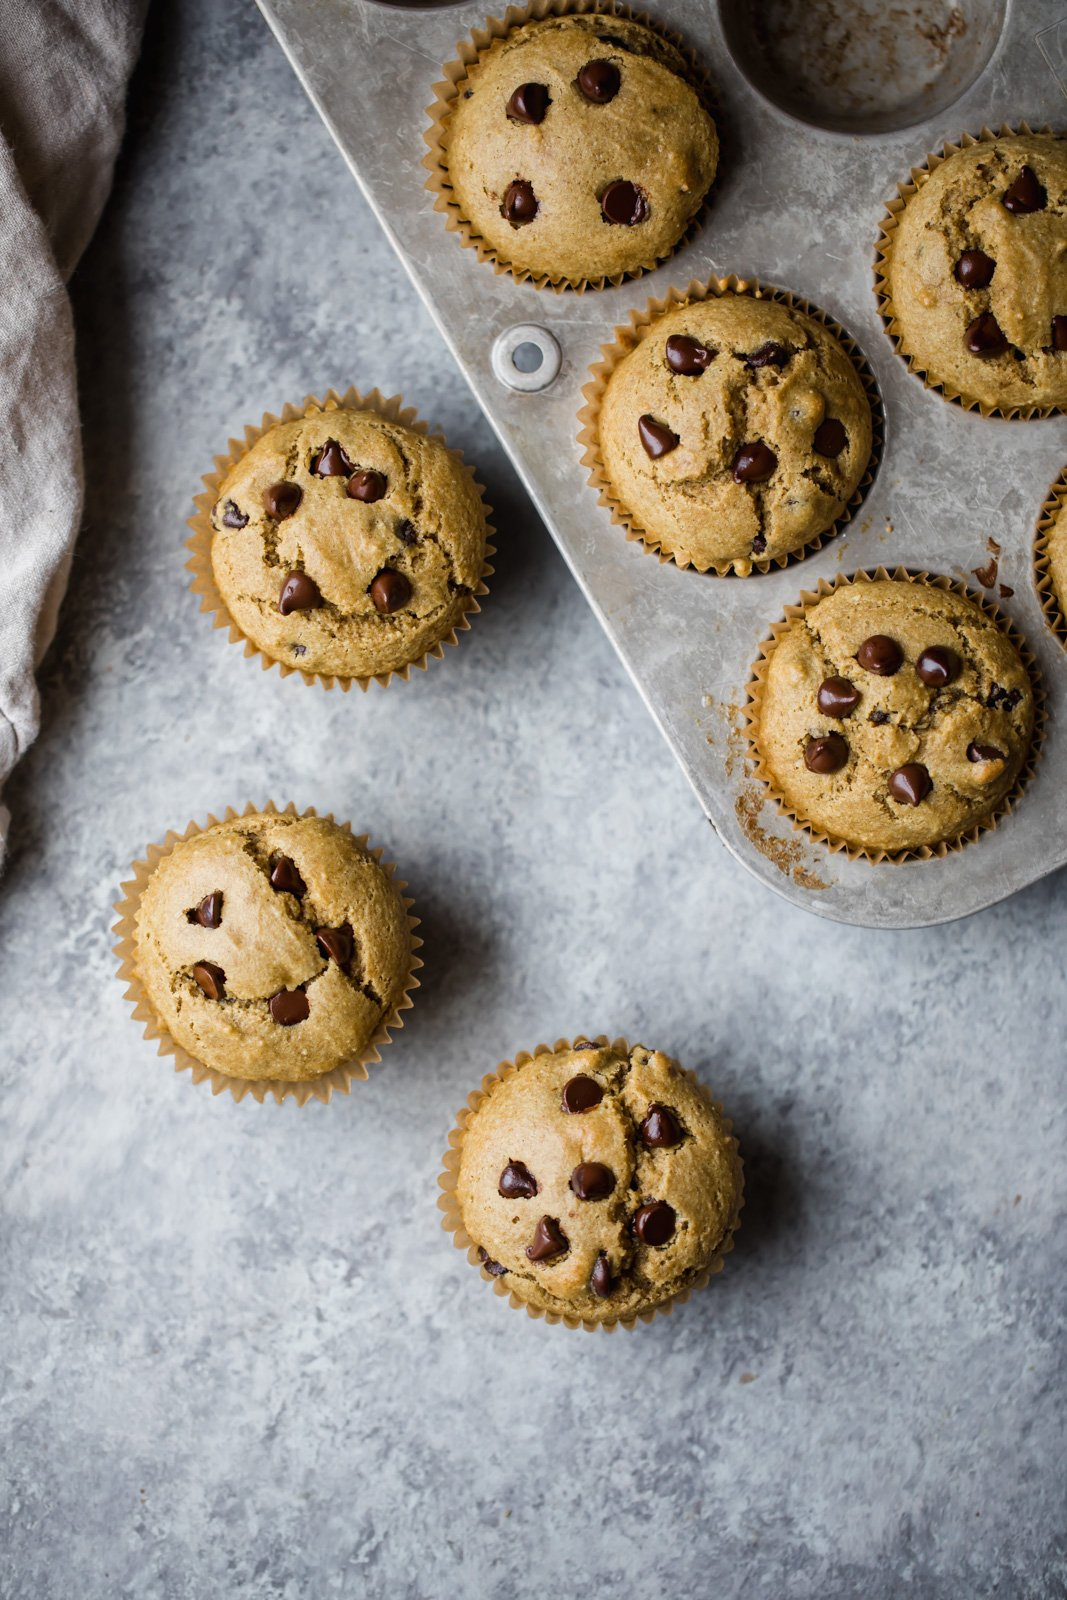 gluten free chocolate chip muffins on a board and in a muffin tin